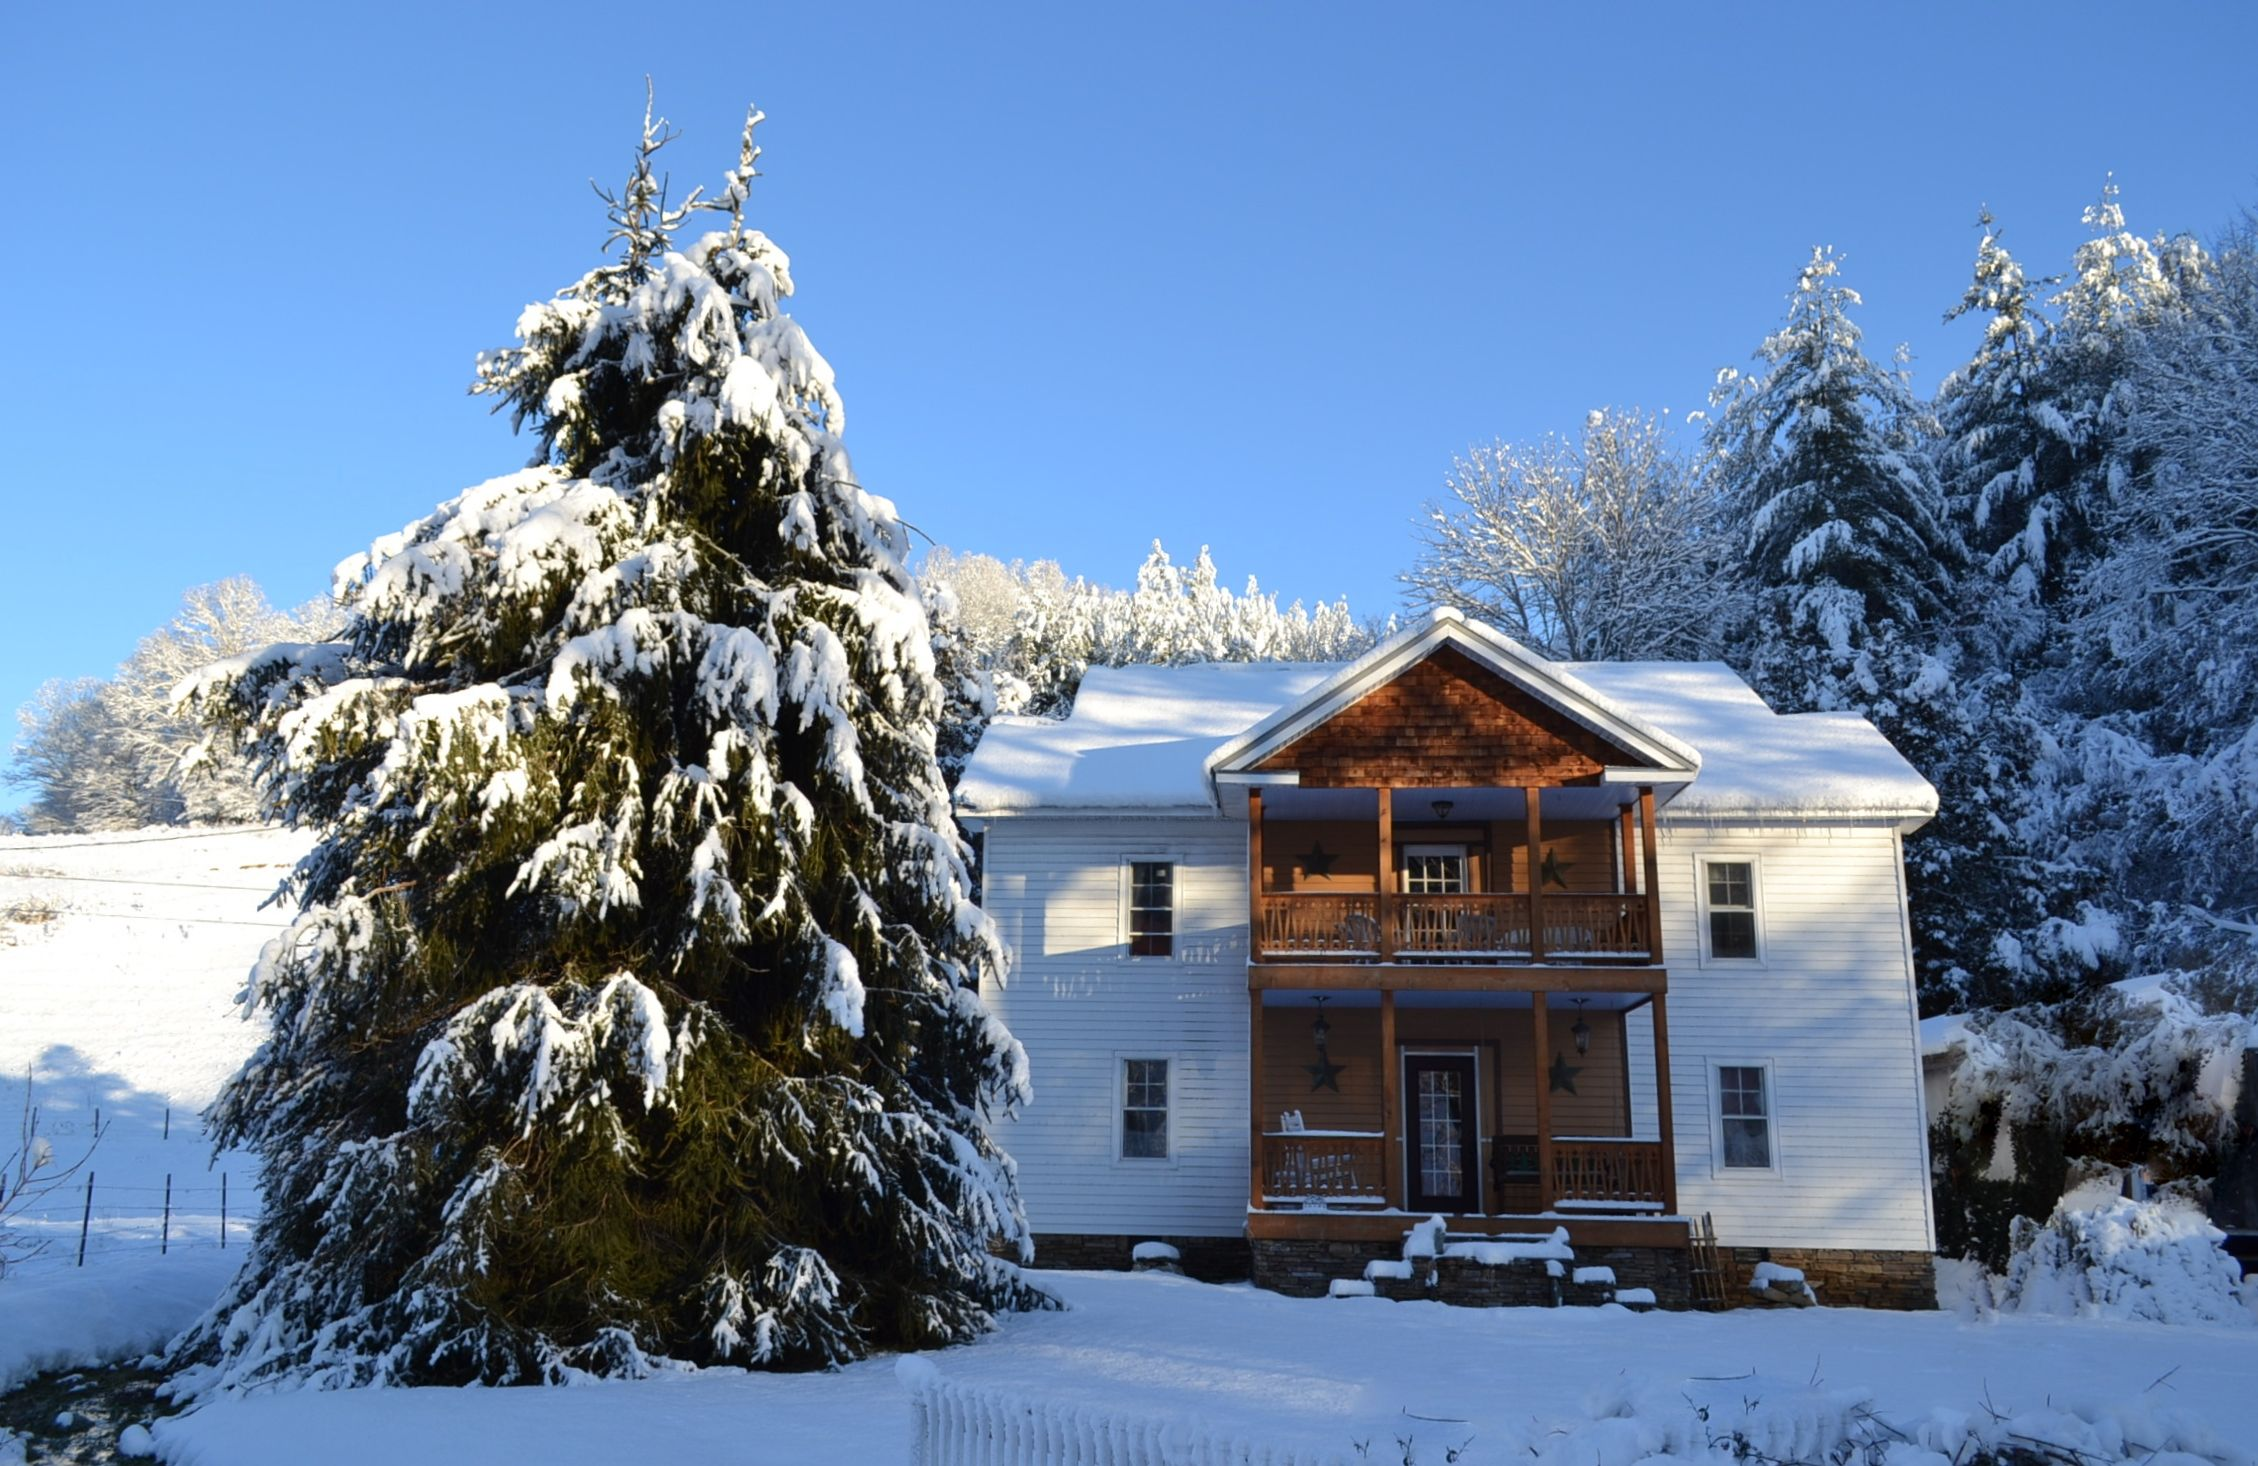 Snow in 2013 - this is magnificent.  Home in the snow.